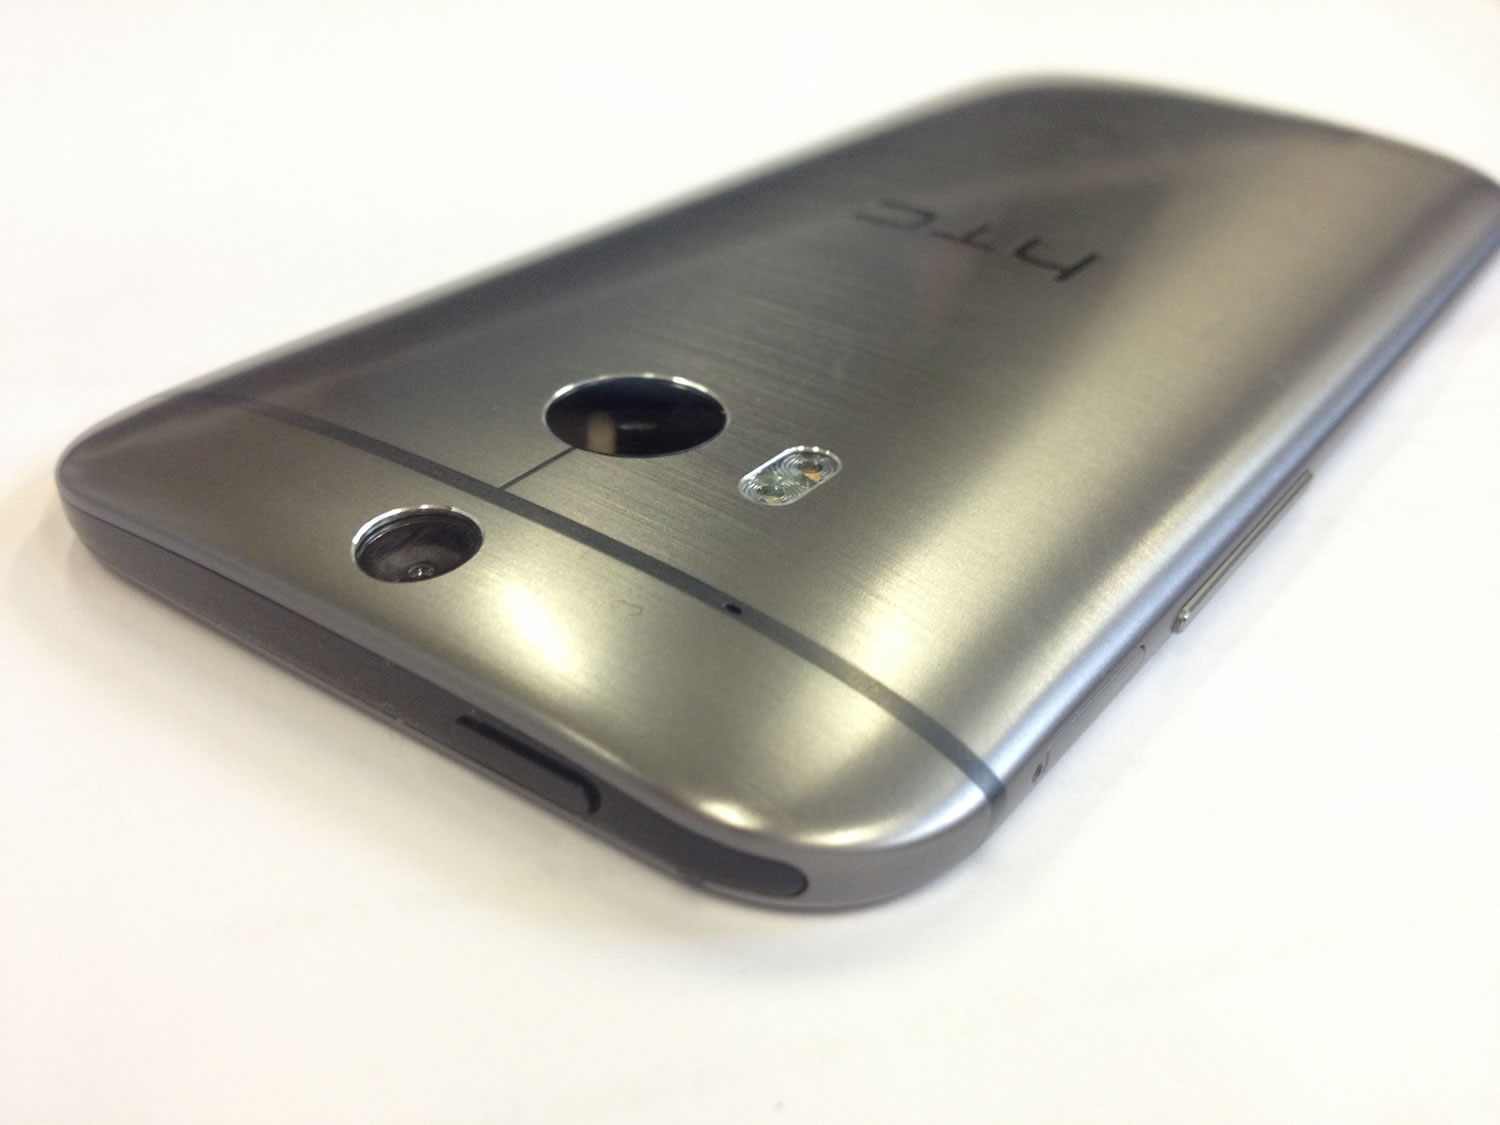 Htc One M8 Design | Htc One M8 Review